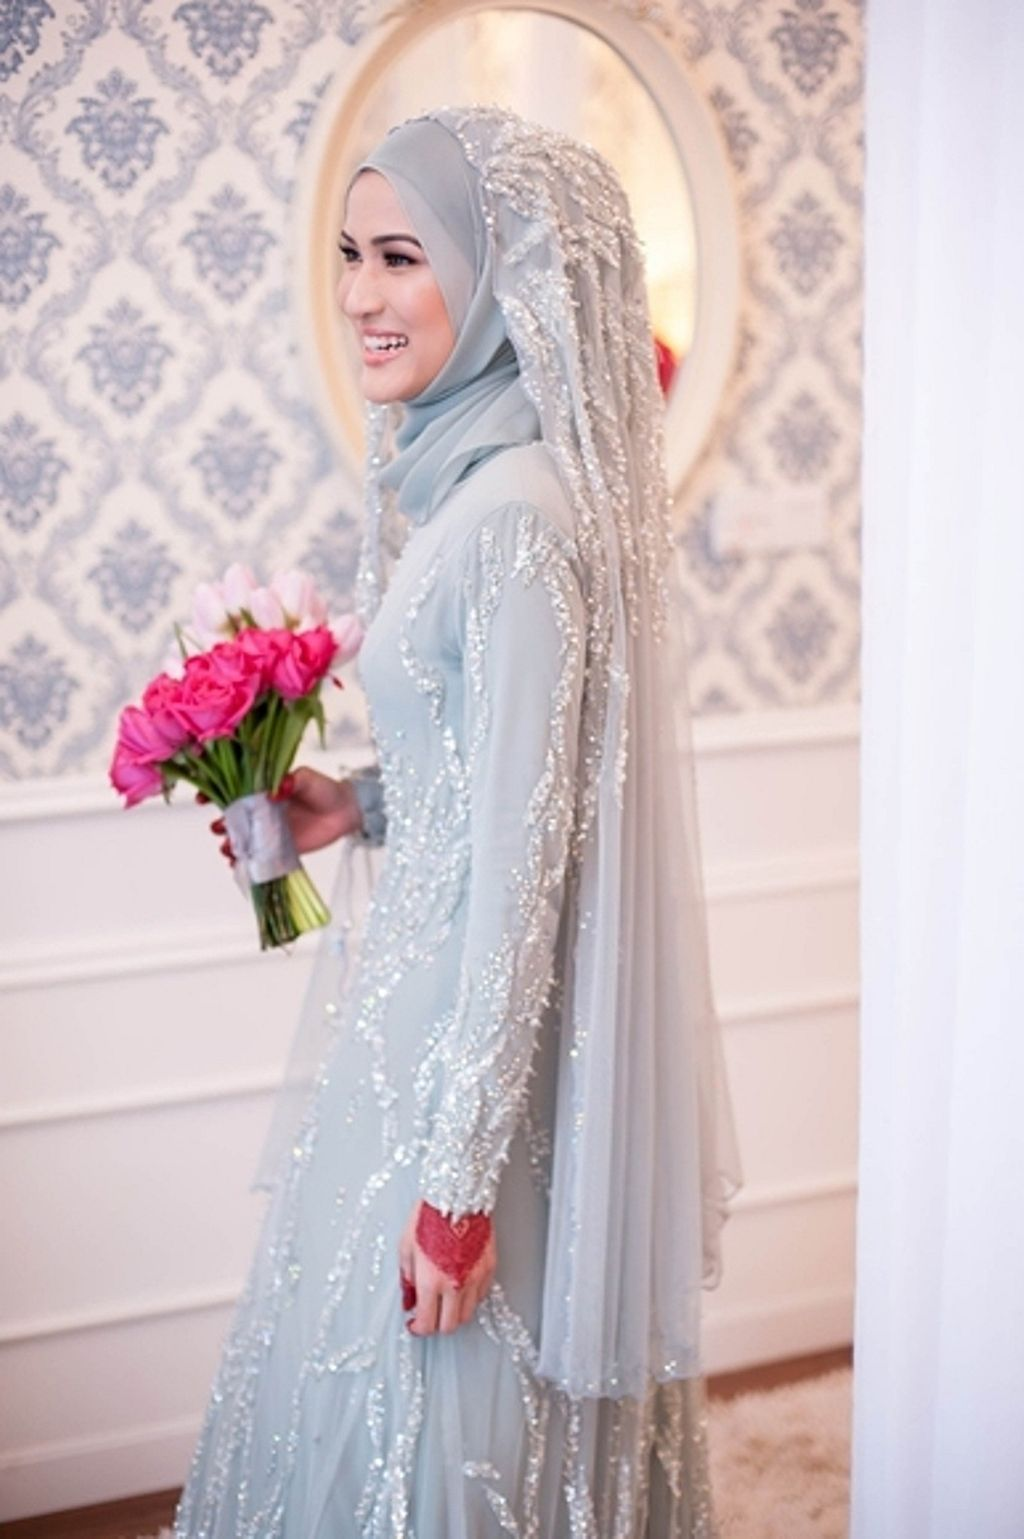 Tips For Looking Your Best On Your Wedding Day Luxebc Muslimah Wedding Dress Muslim Wedding Dresses Nikah Dress [ 1539 x 1024 Pixel ]